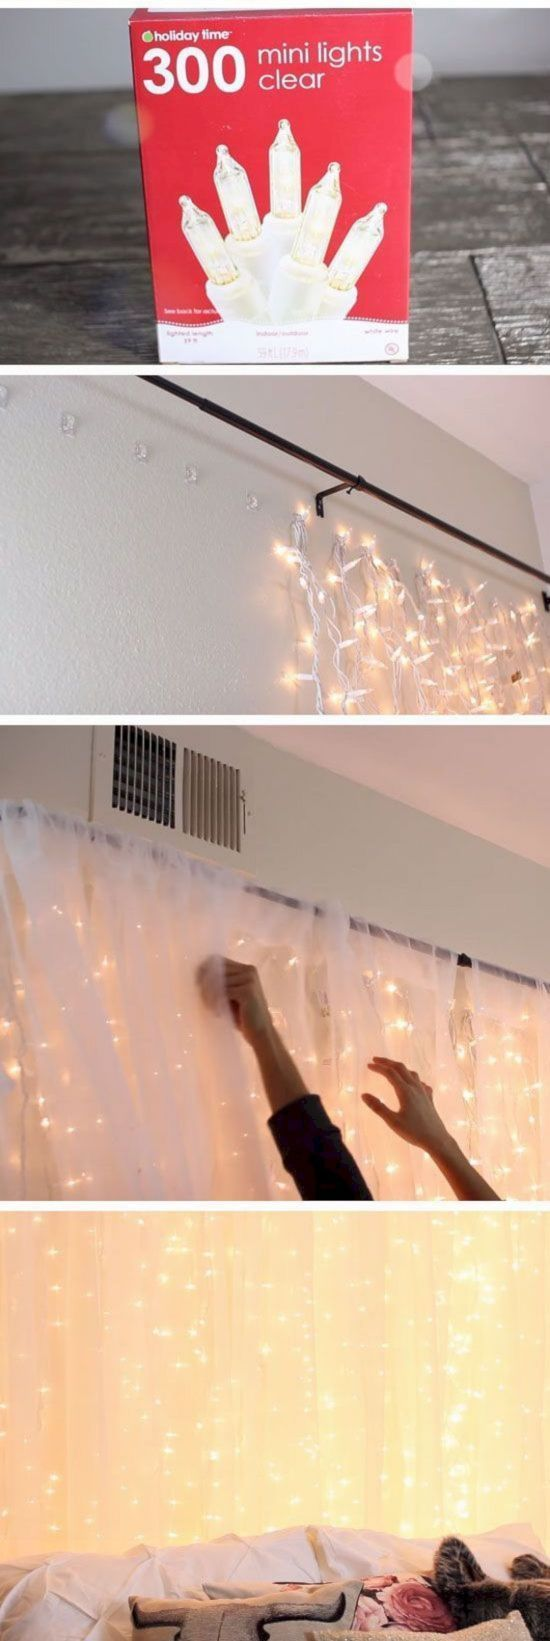 10 cute DIY ideas that will make your home adorable